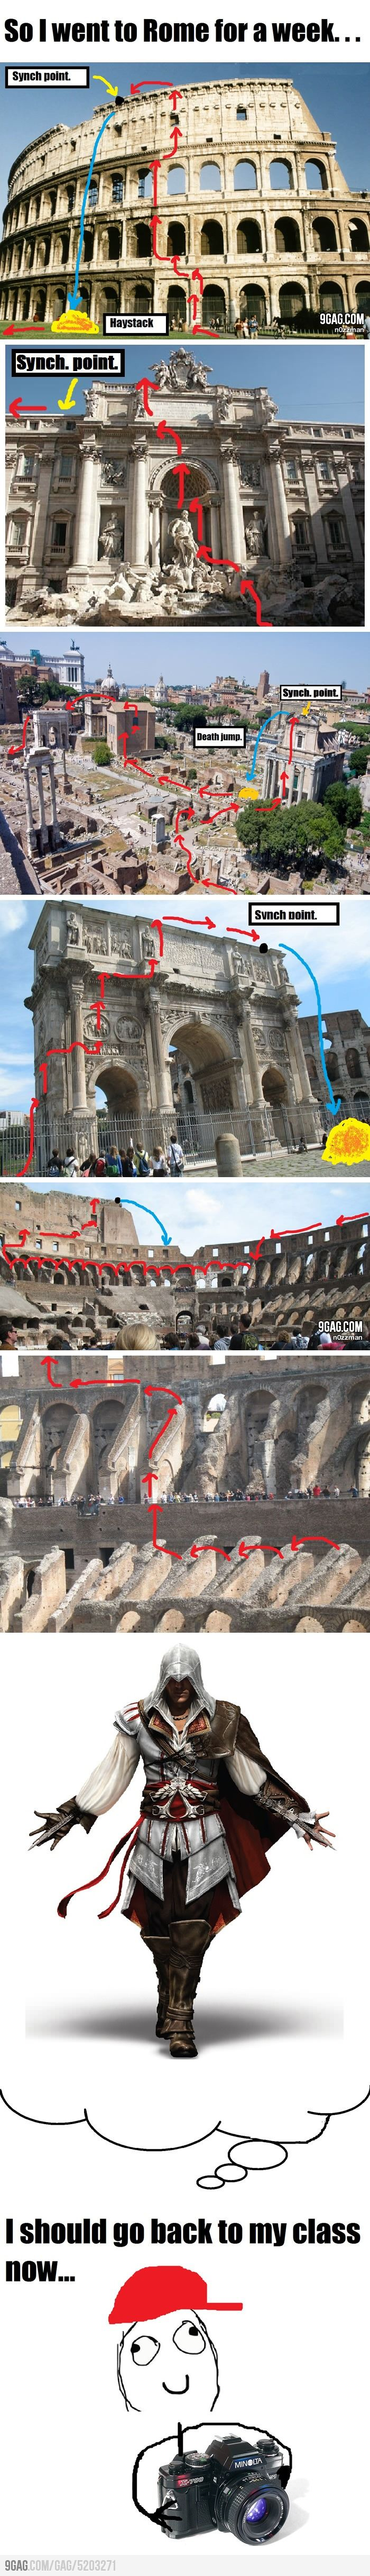 How I see Italian architecture. #assassinscreed